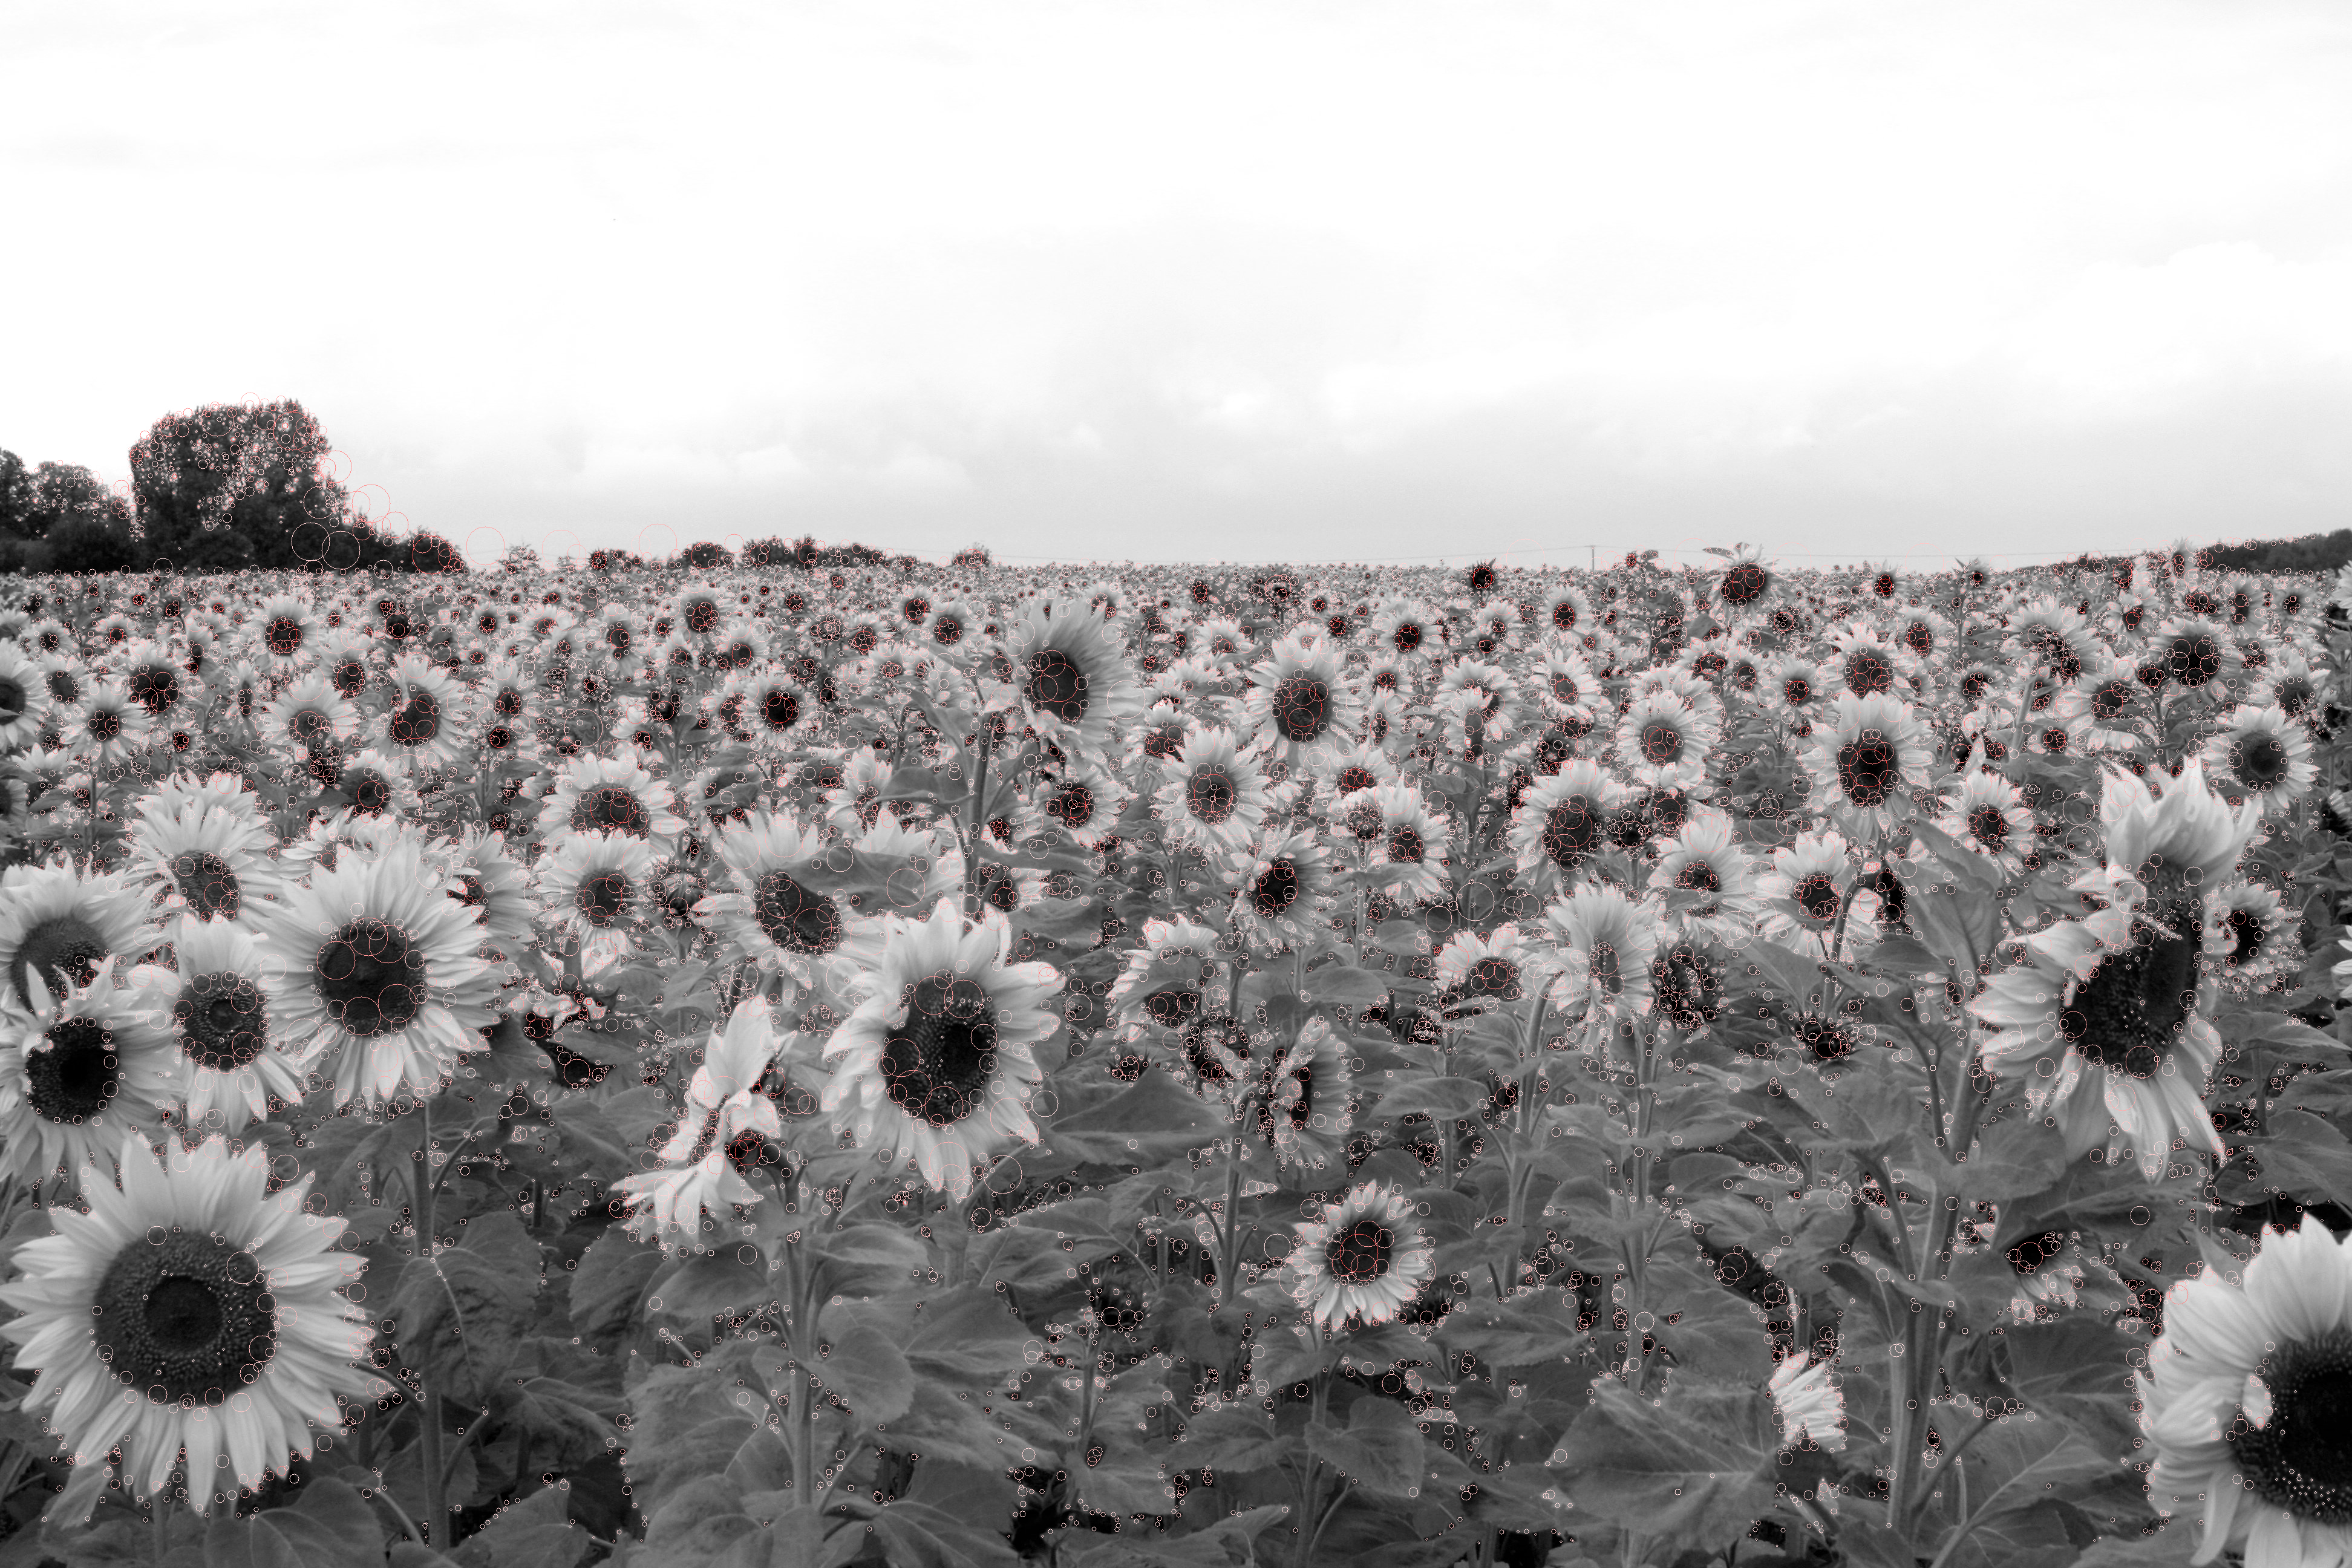 17180 detected blobs in an image showing sunflowers